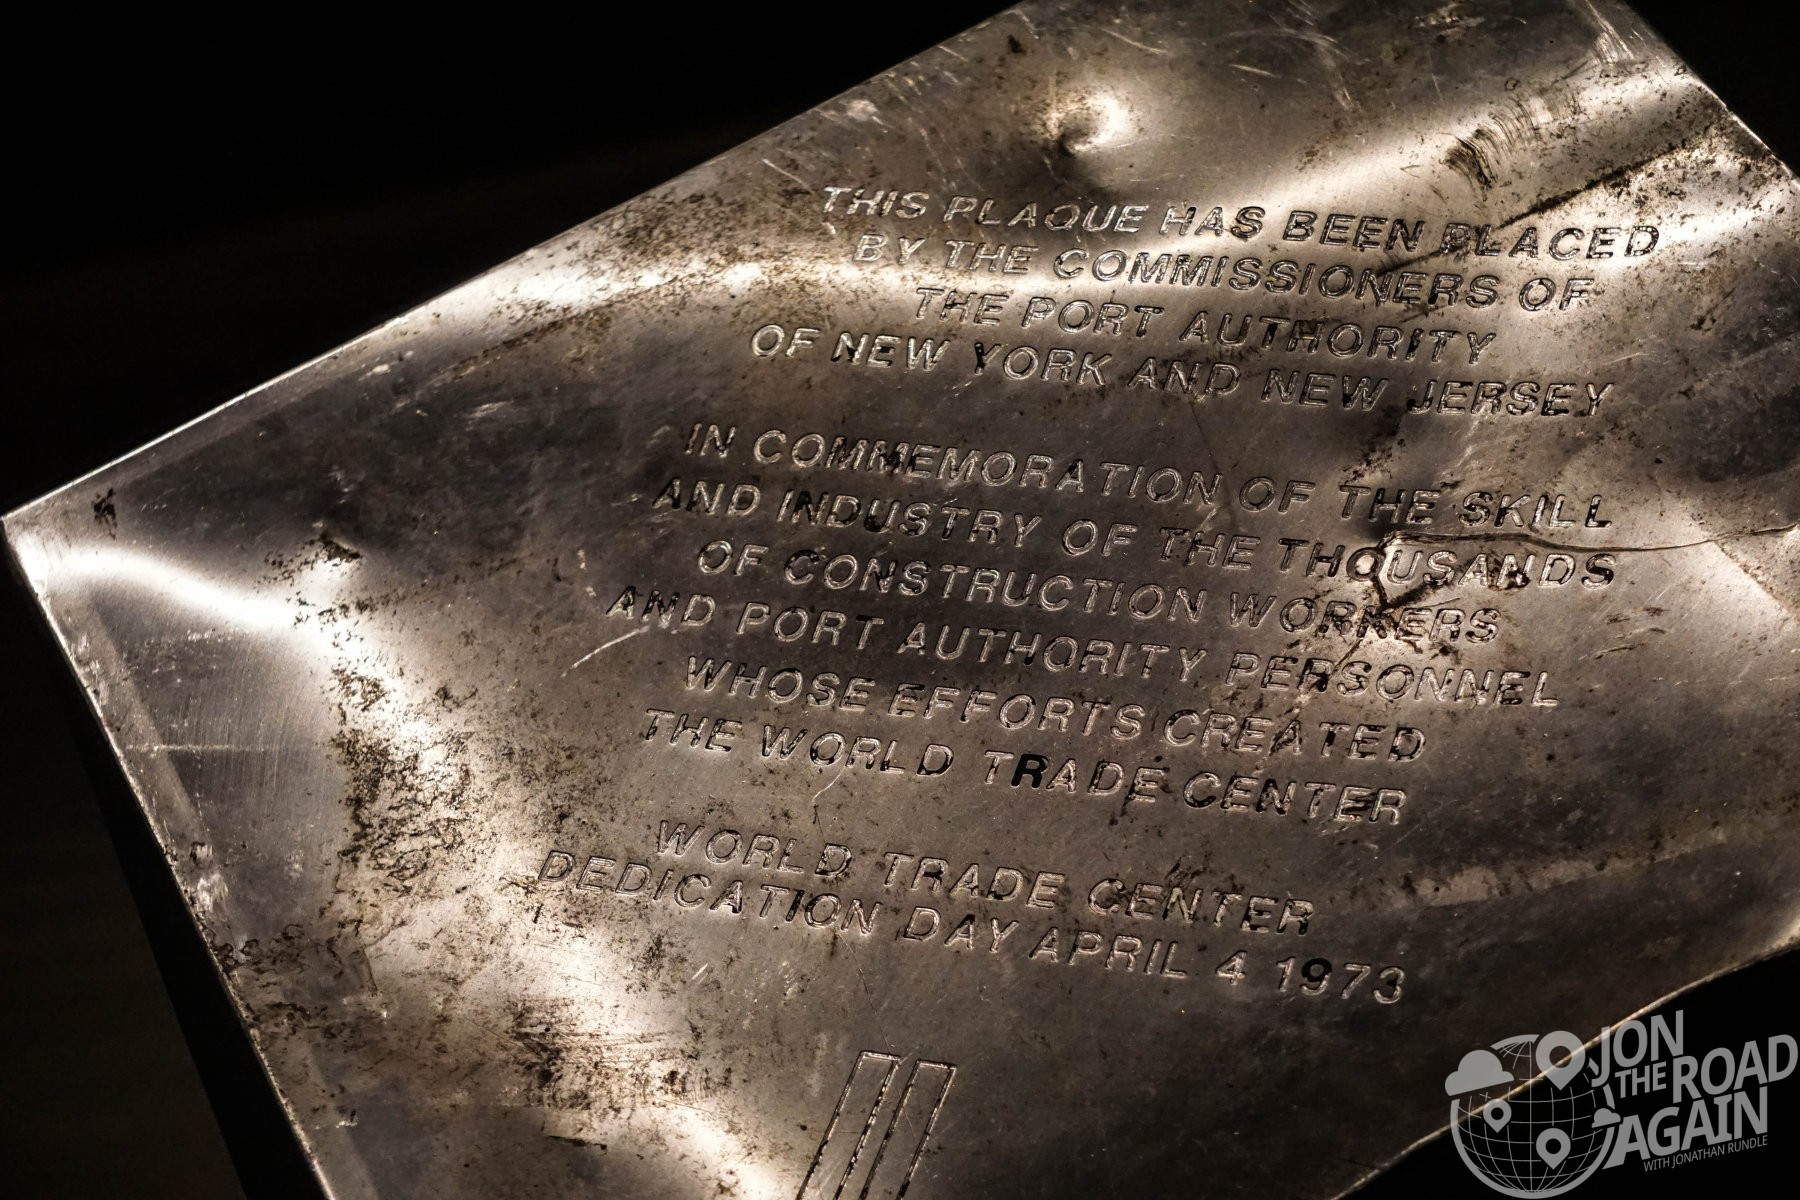 World Trade Center Plaque